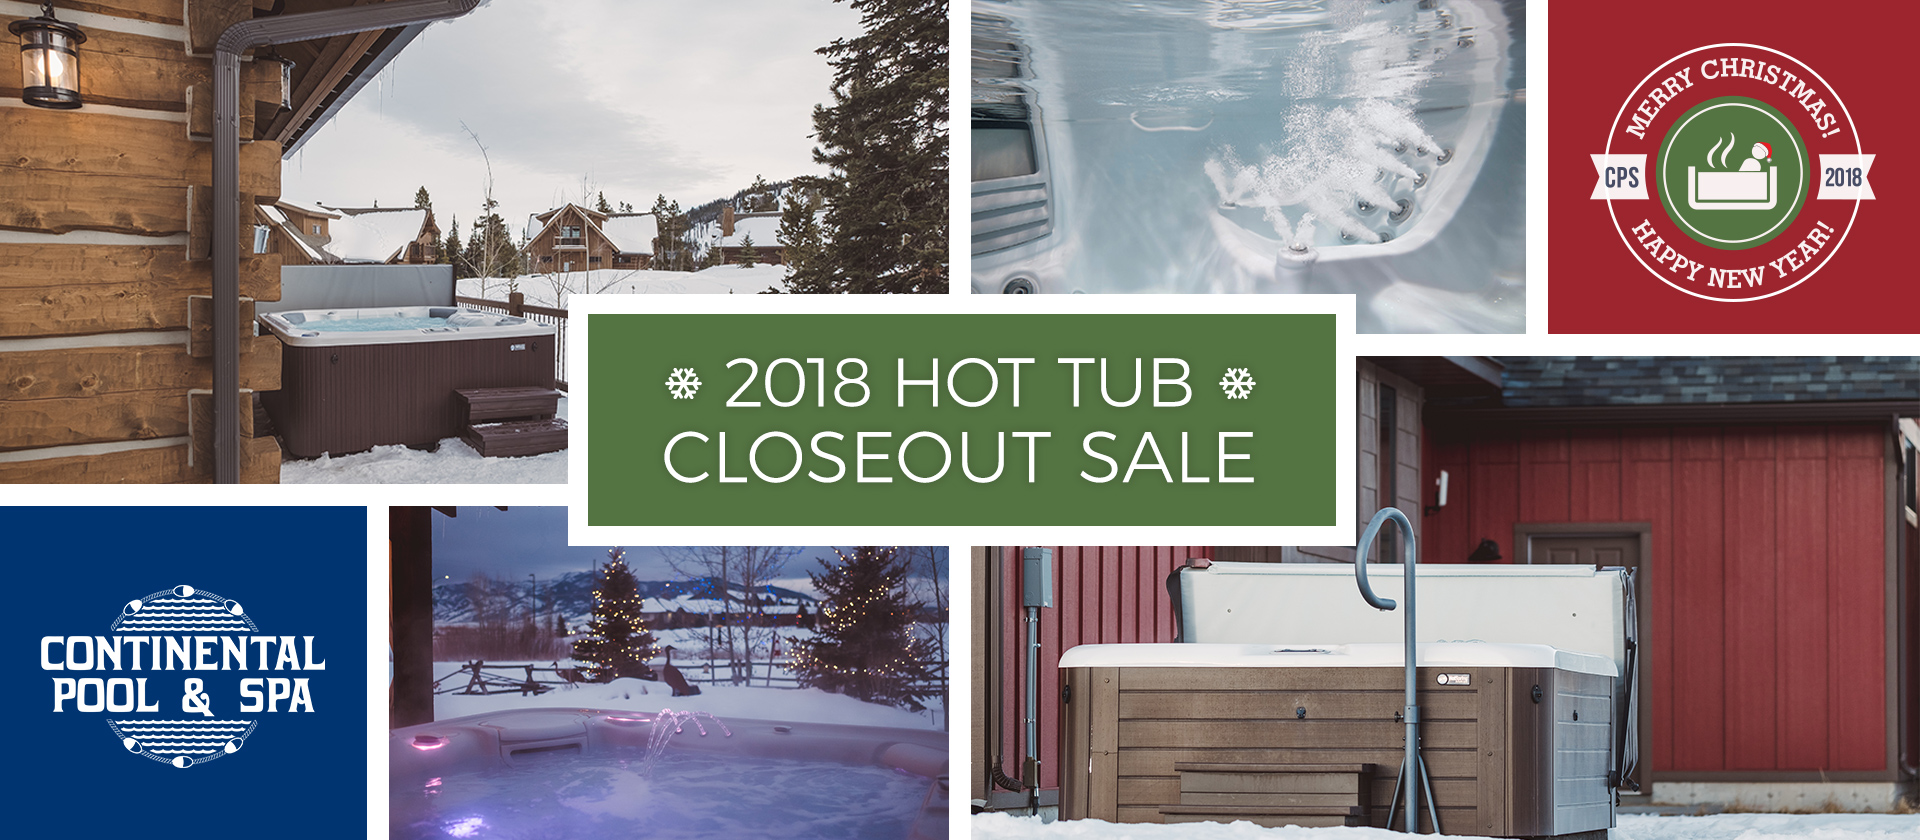 2018 Closeout Hot Tub Sale